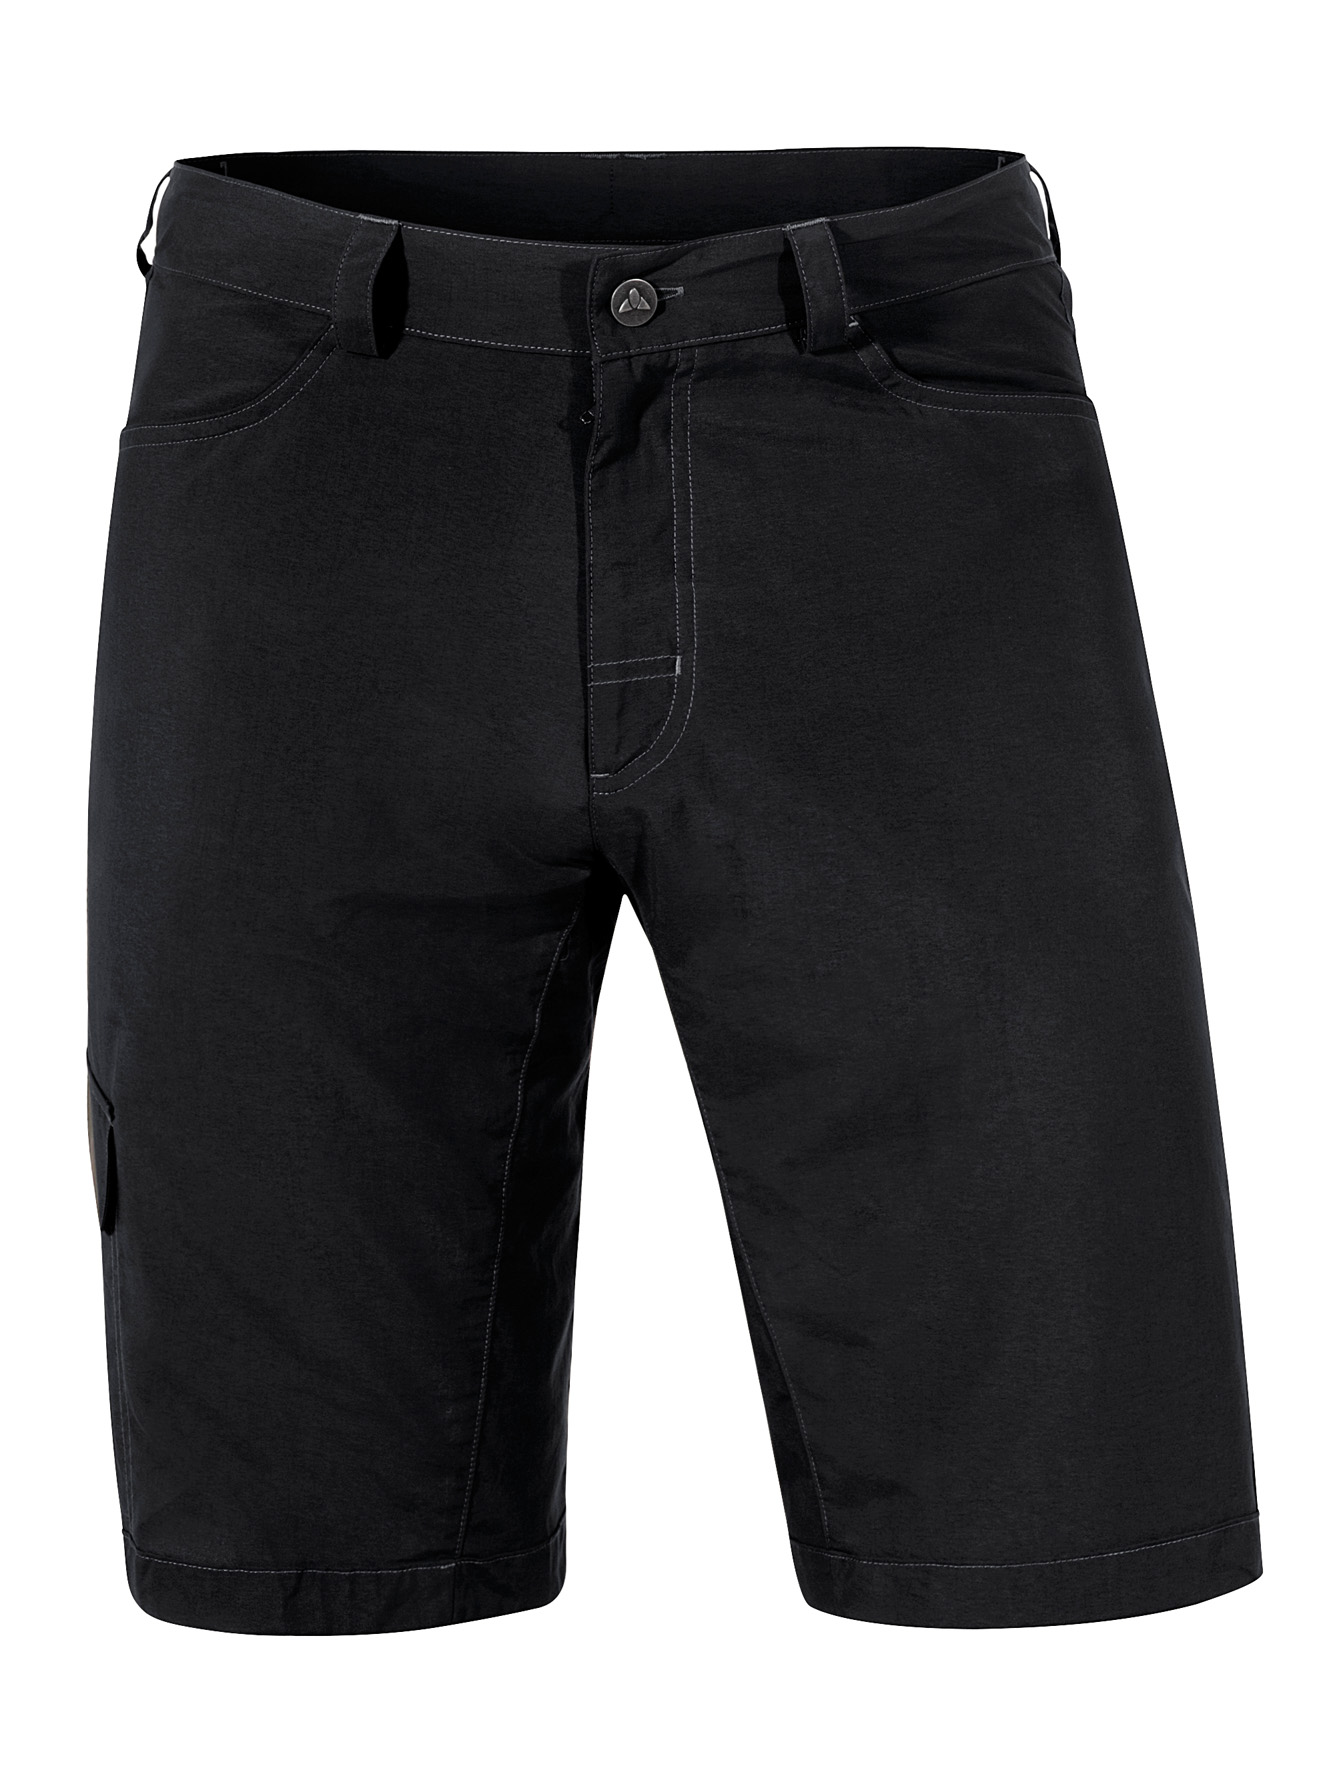 Men´s Lauca Shorts black Größe S - schneider-sports